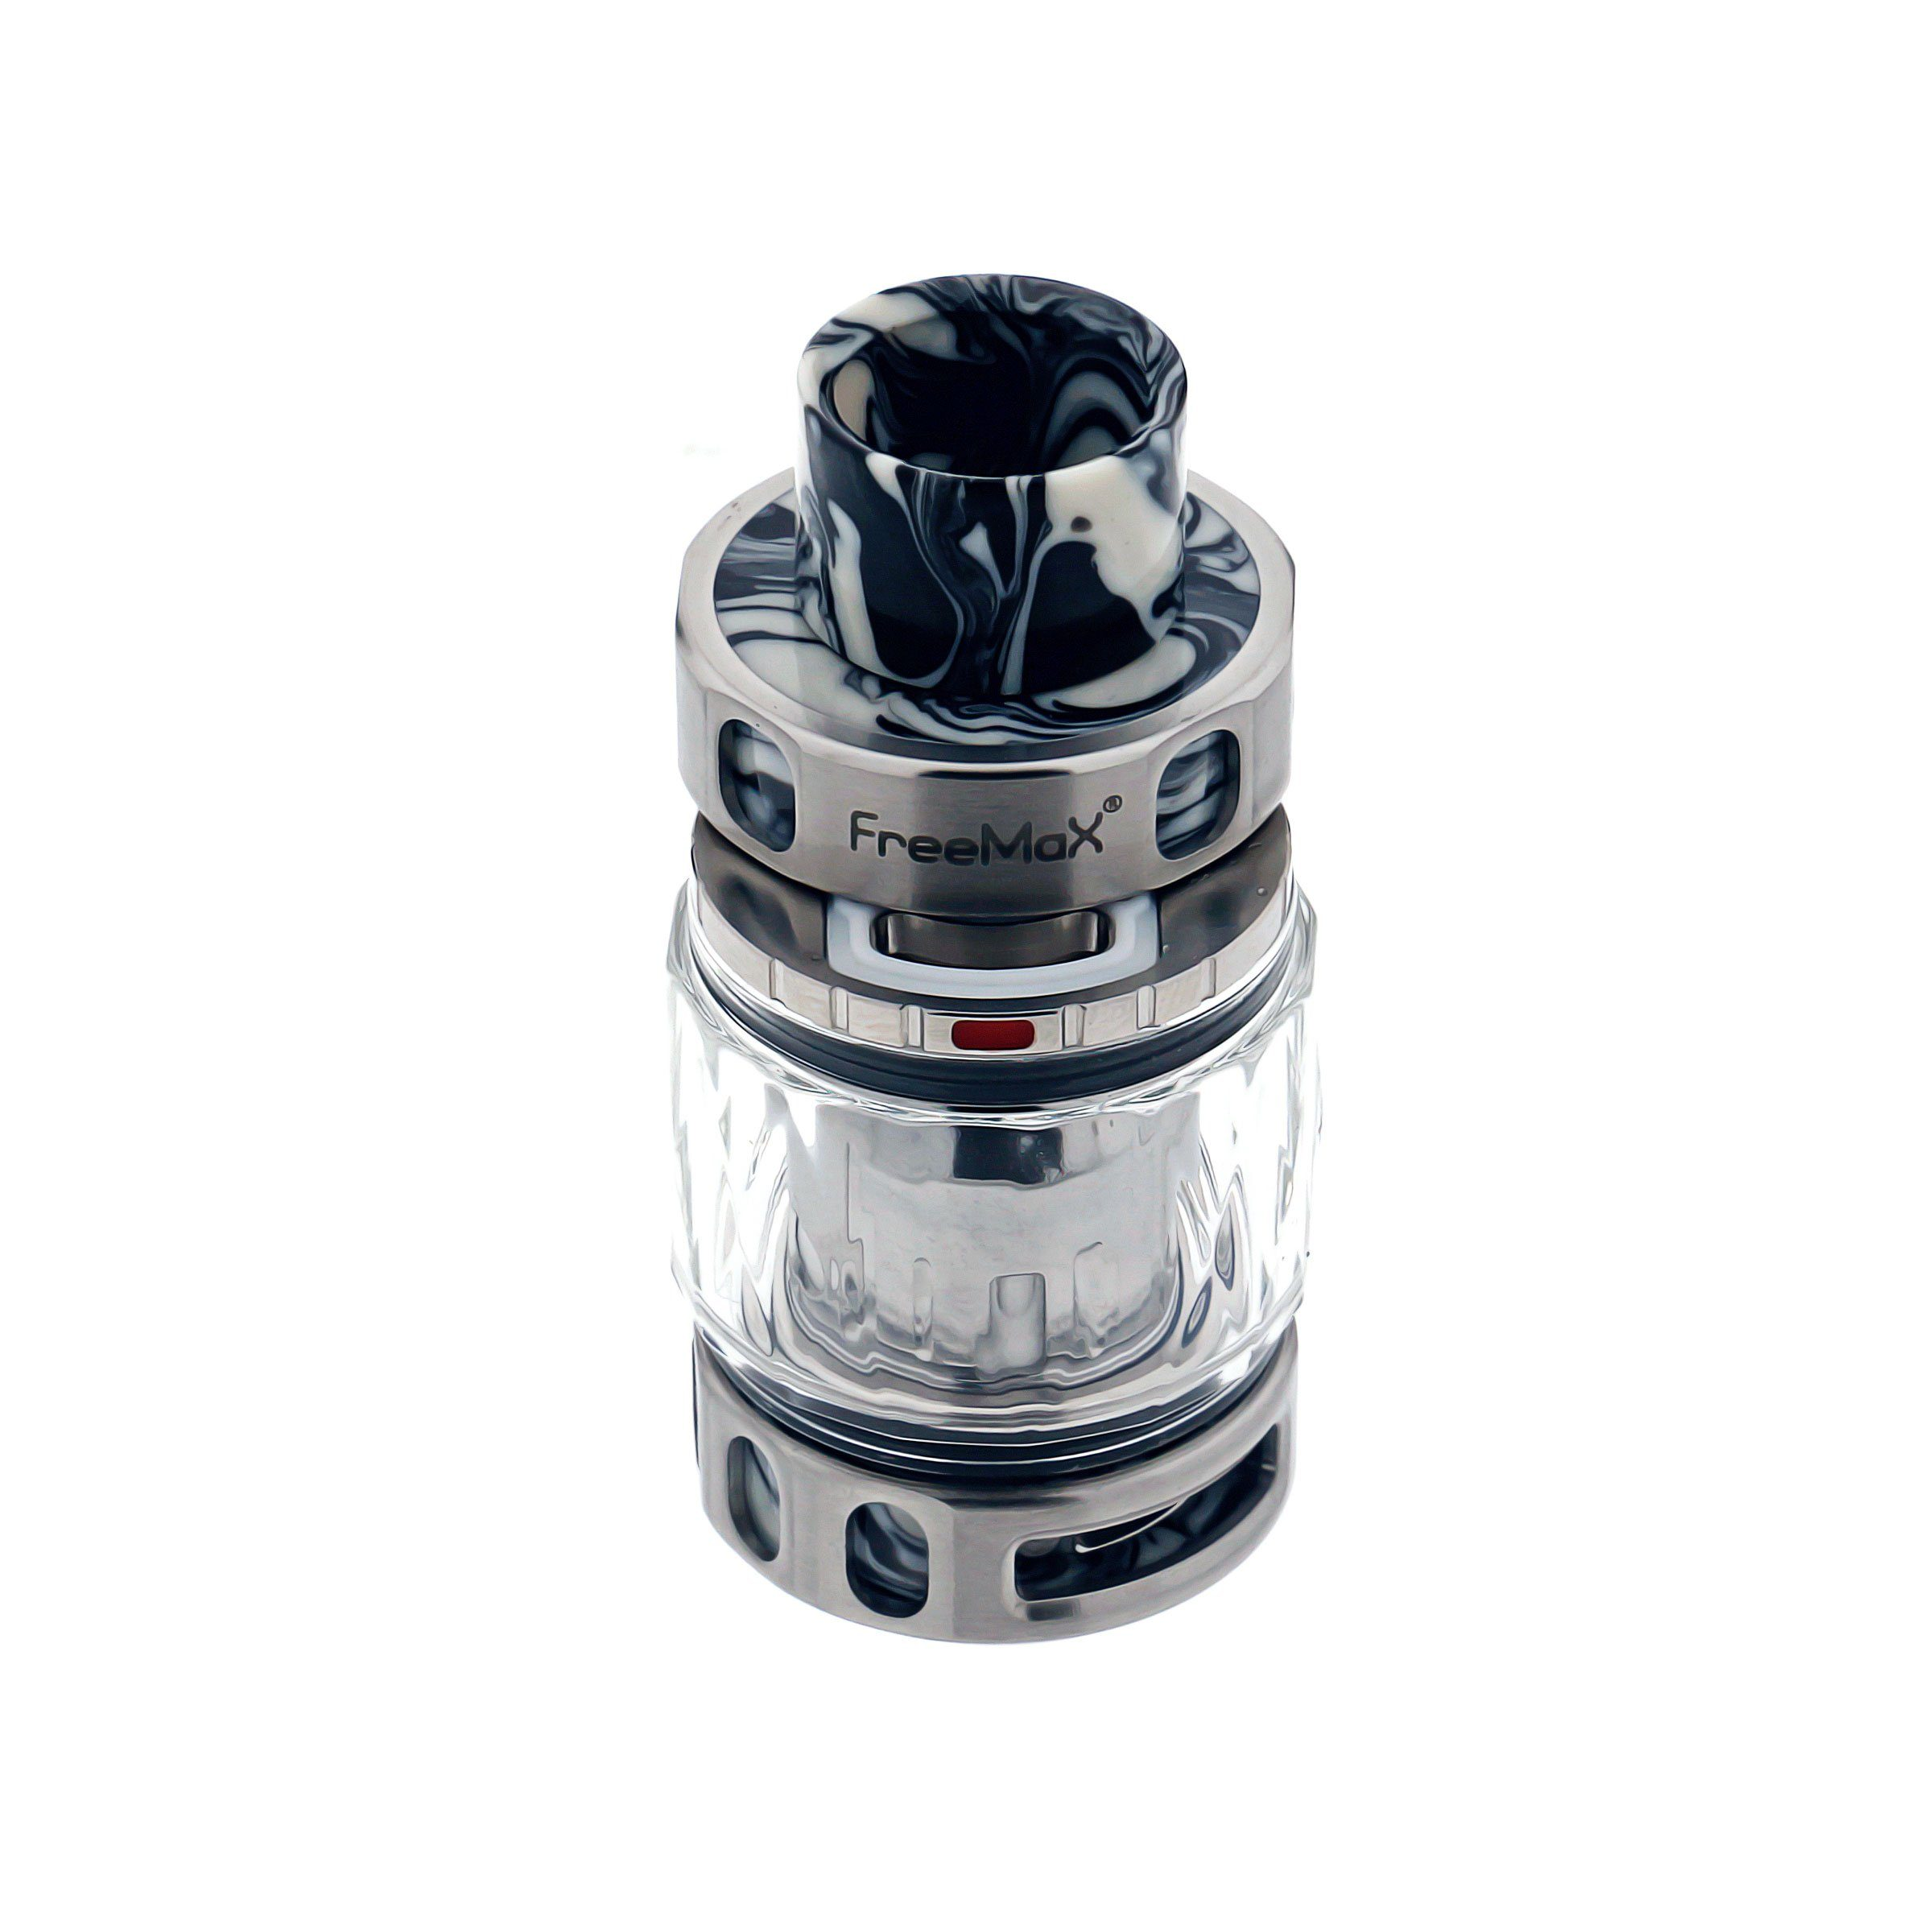 Freemax Maxus 200W Starter Kit with Maxus Pro 2